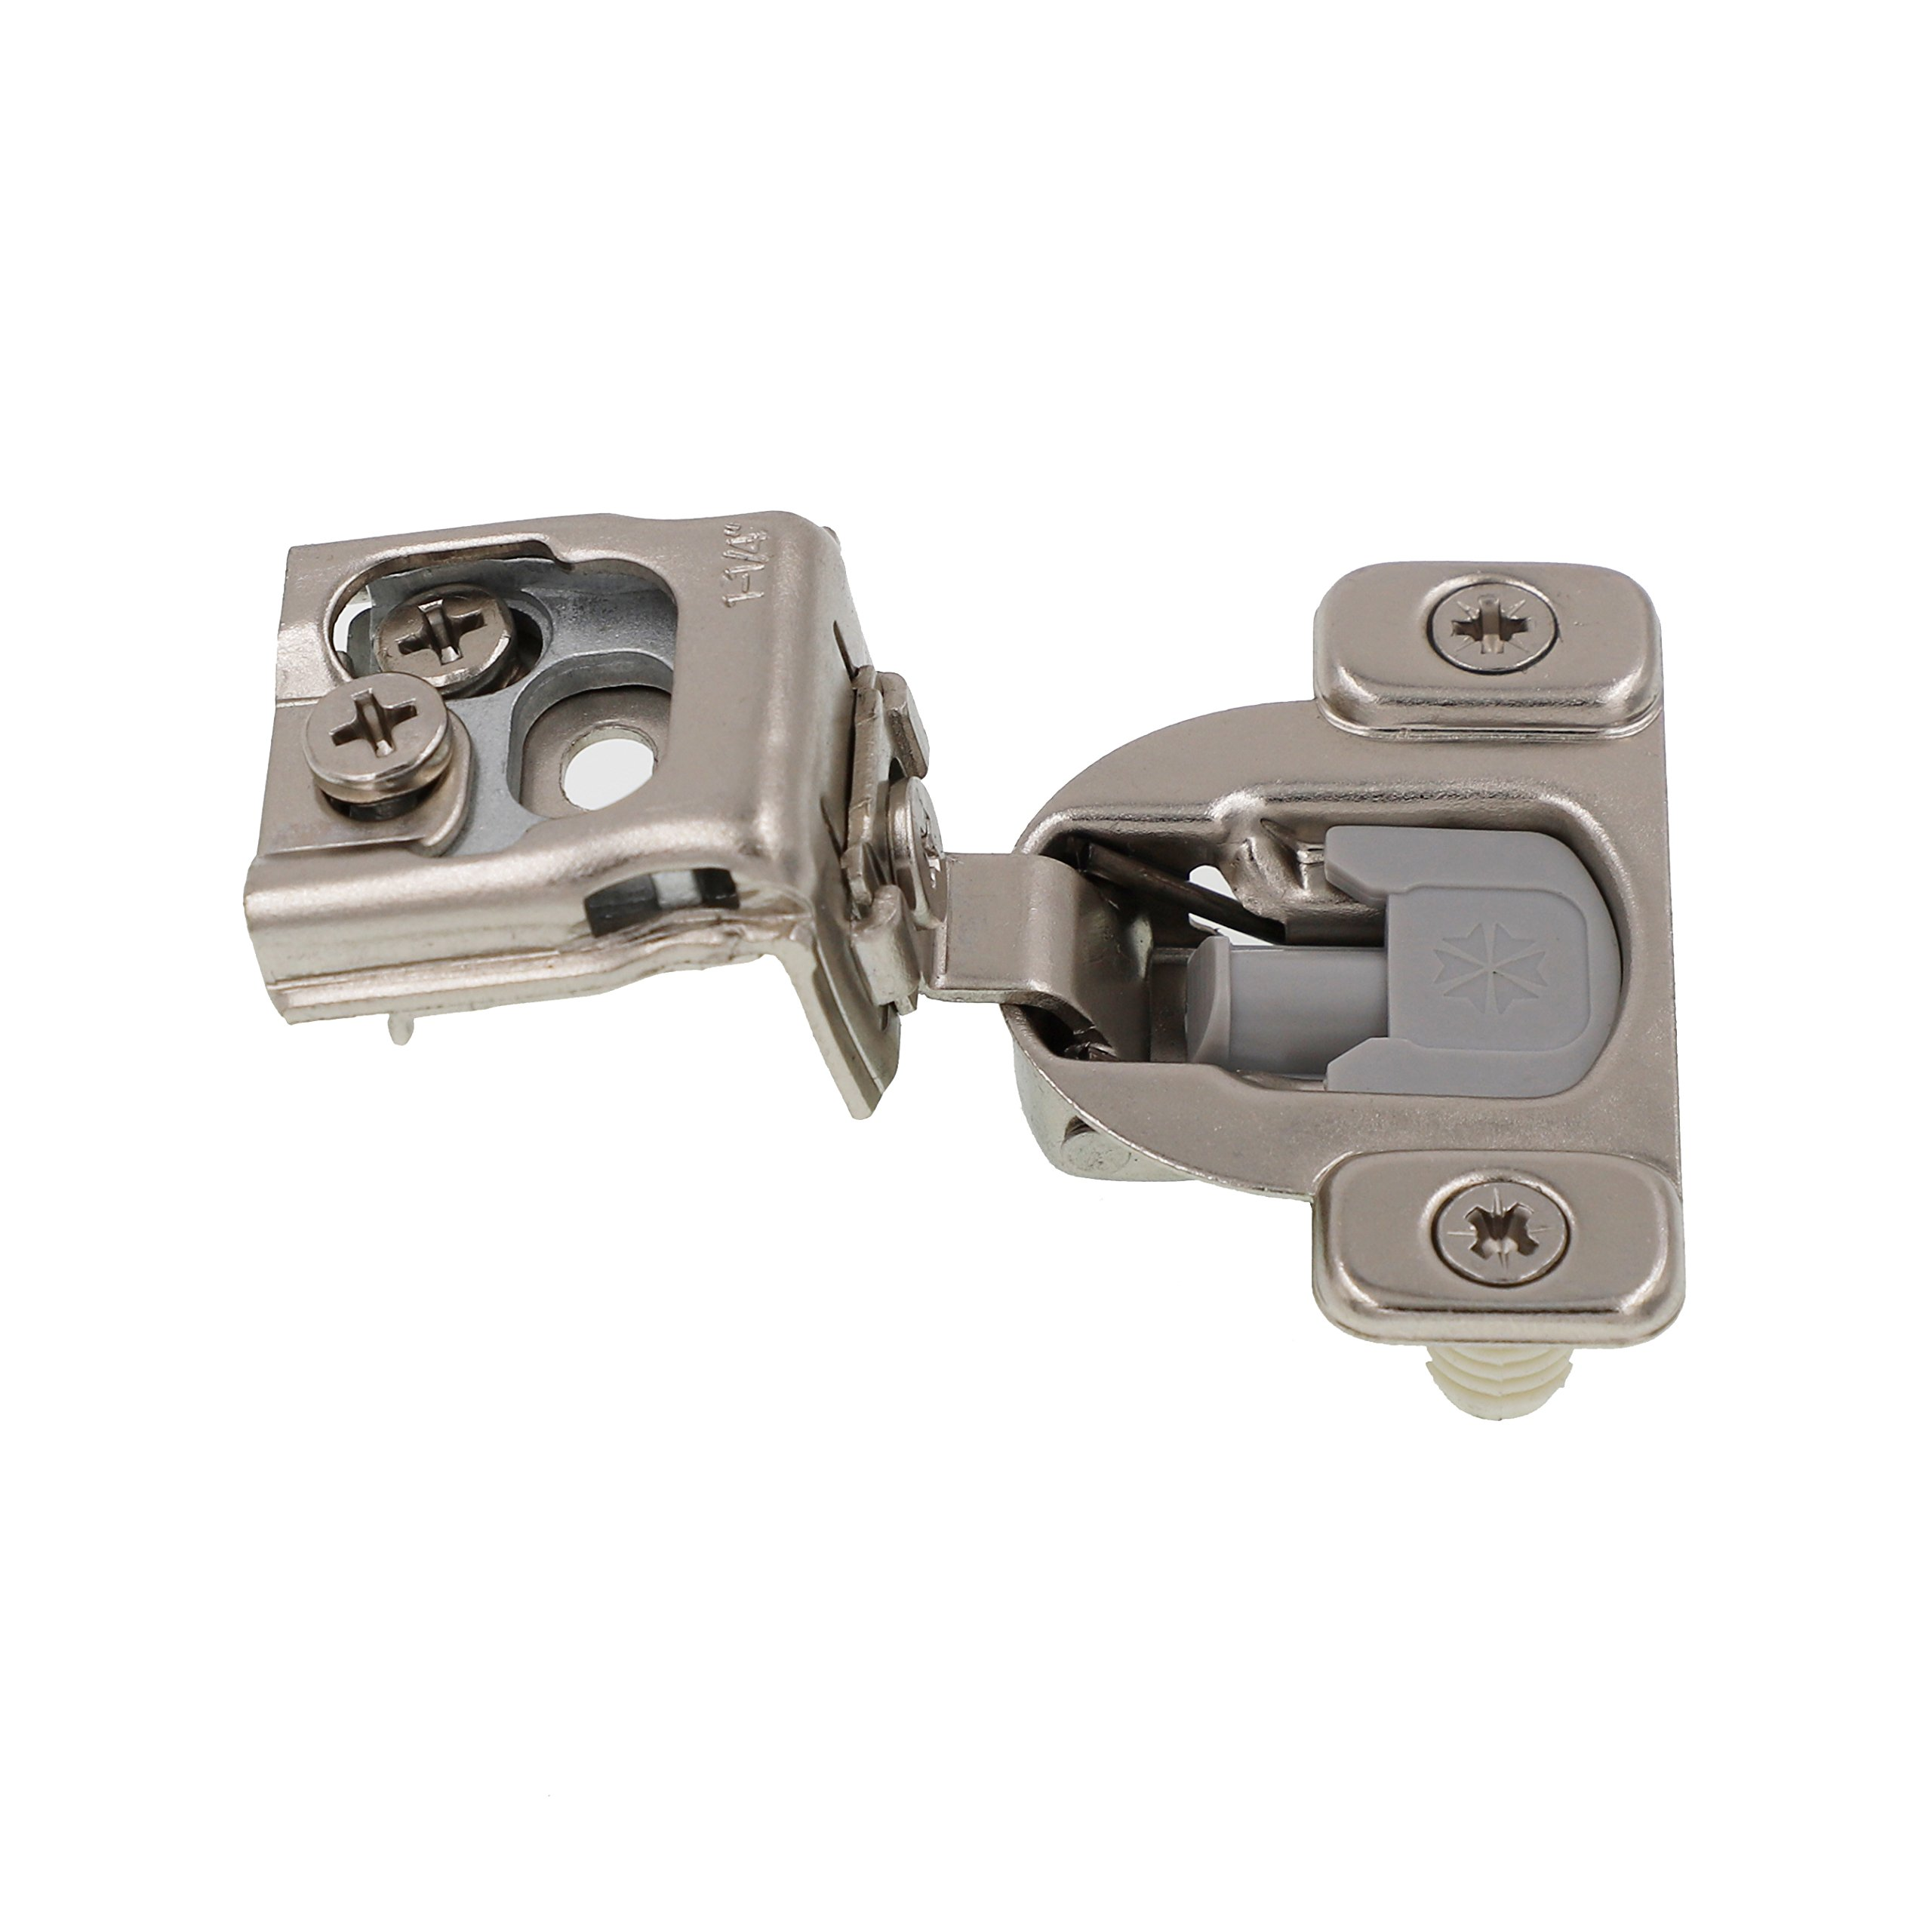 1-1/4'' Overlay Soft Close Face Frame 105° Compact Cabinet Hinge (50) by DecoBasics (Image #2)